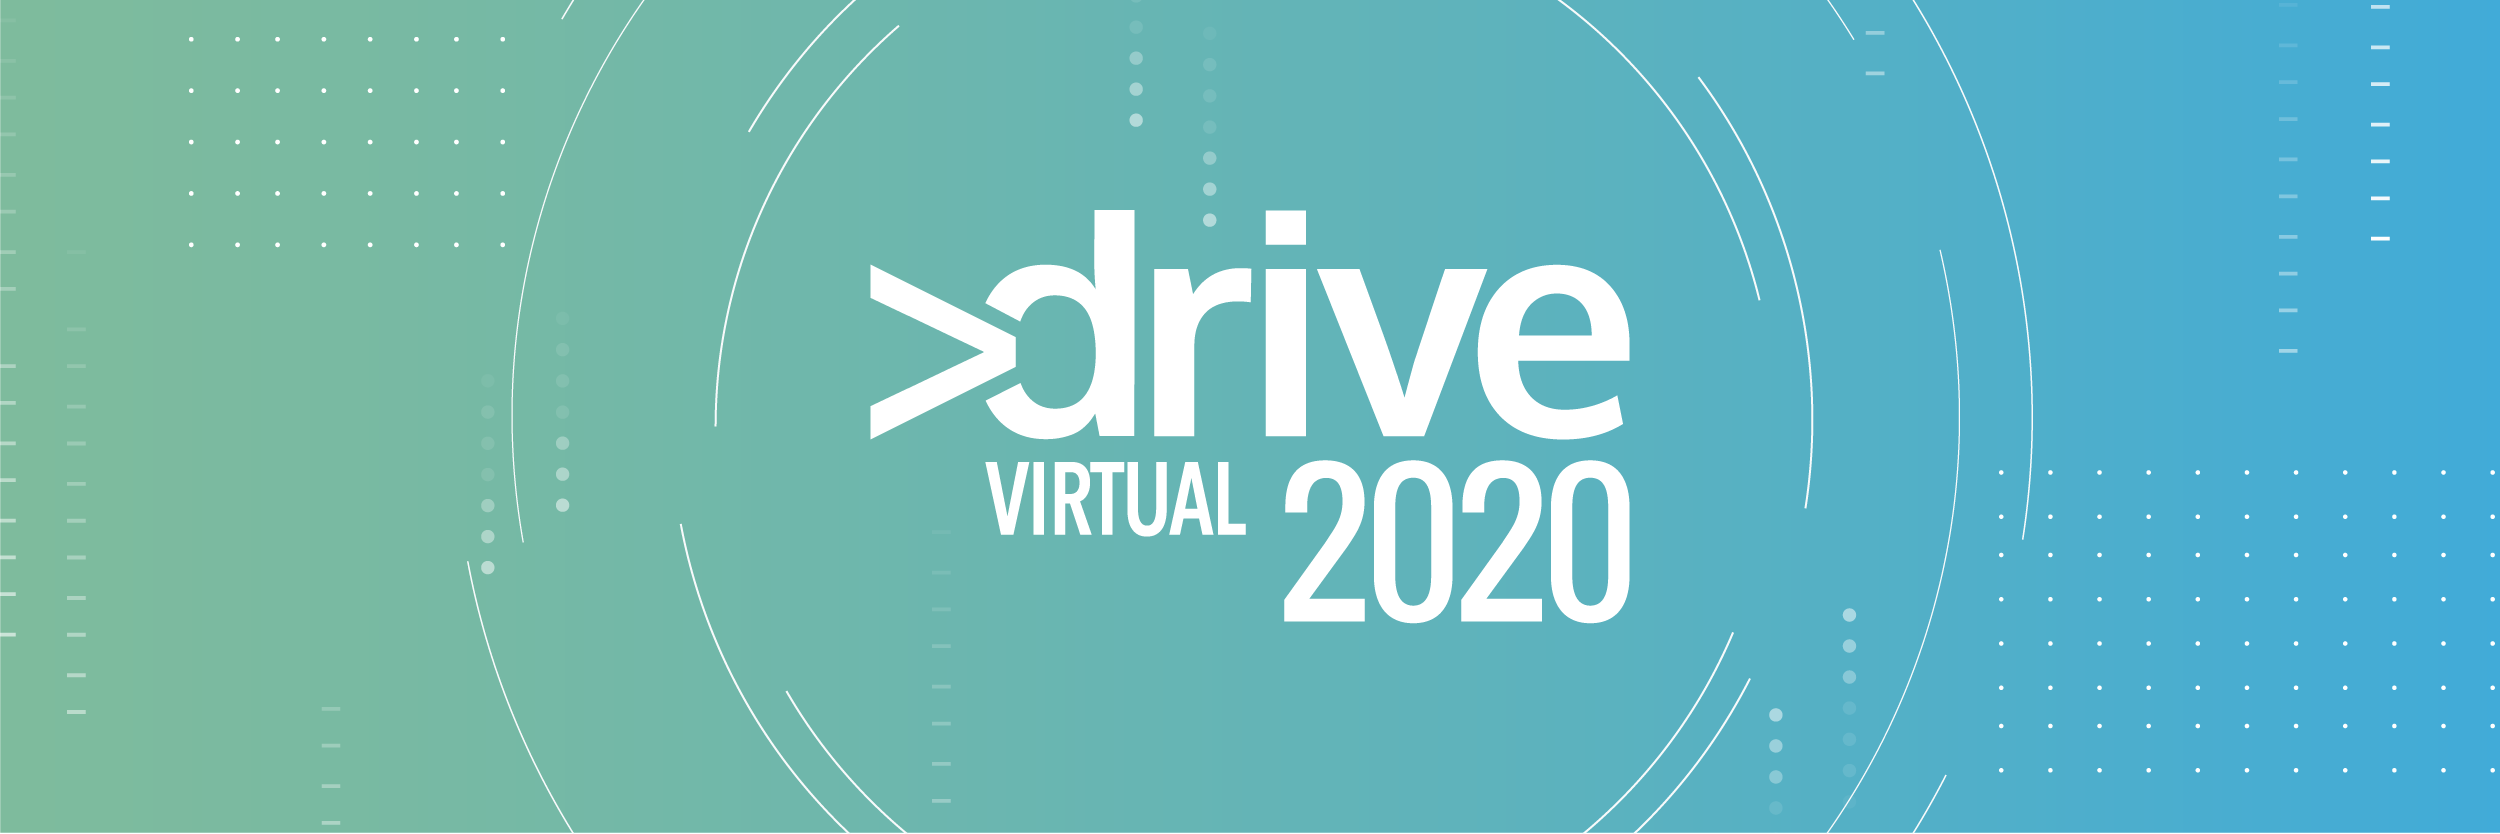 AdvisorEngine's >drive2020 goes virtual